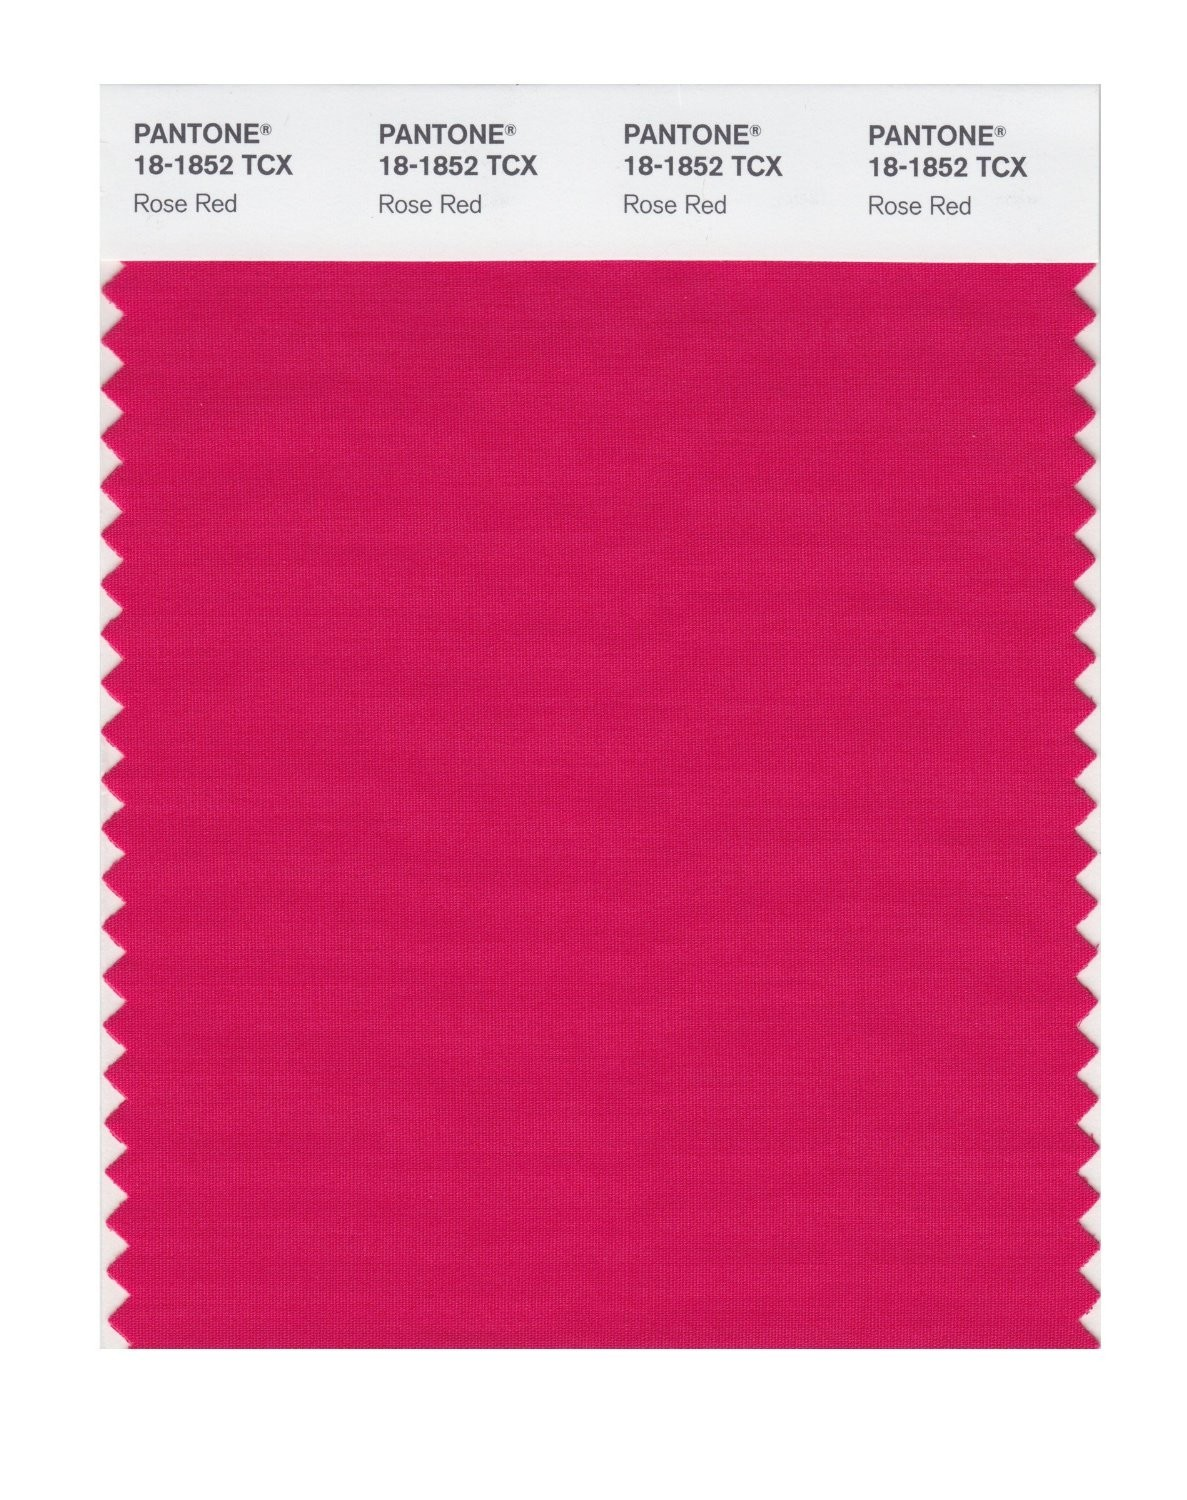 Pantone 18-1852 TCX Swatch Card Rose Red